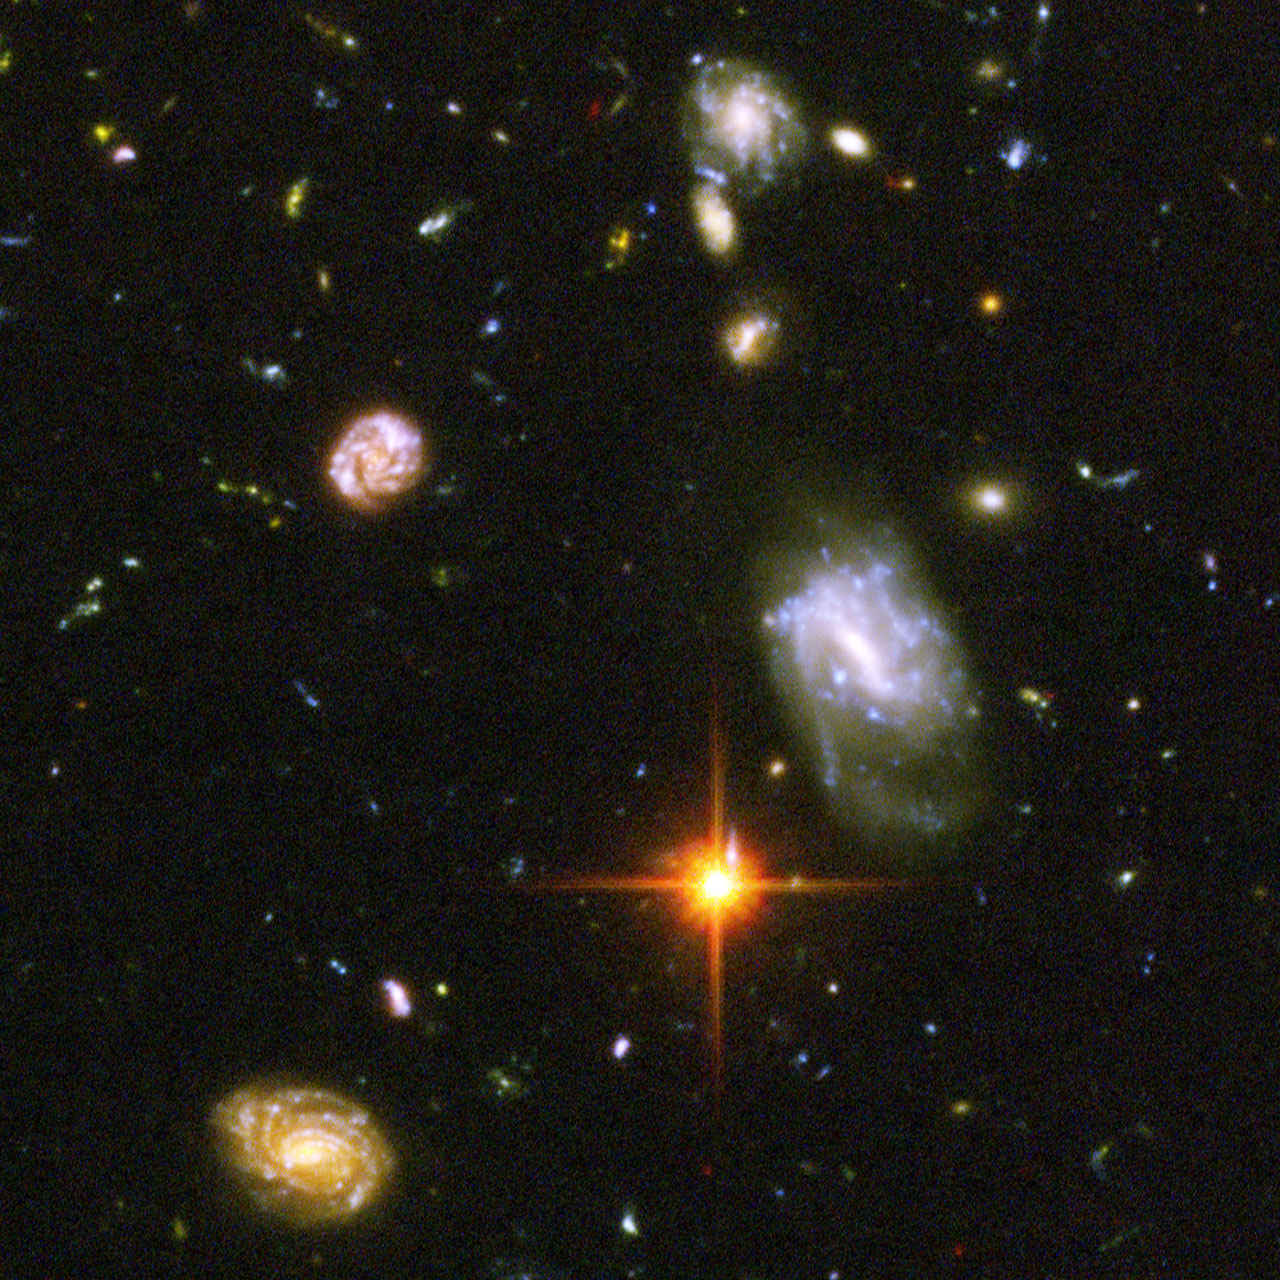 Collision with a Spiral Galaxy